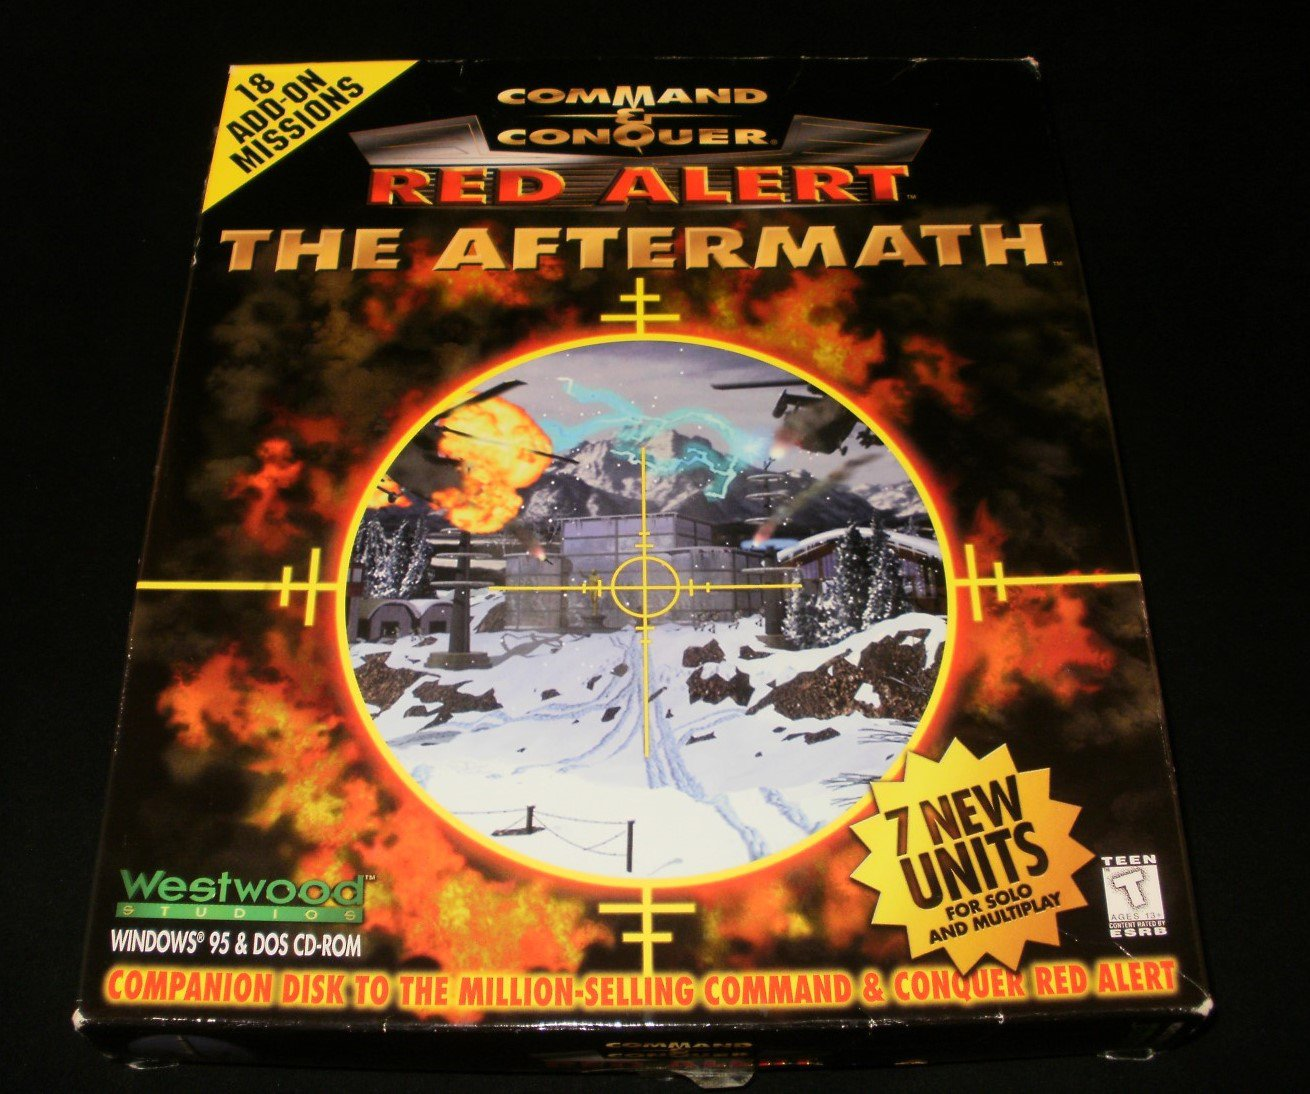 Command & Conquer Red Alert The Aftermath Expansion - 2000 Westwood Studios - IBM PC - Complete CIB